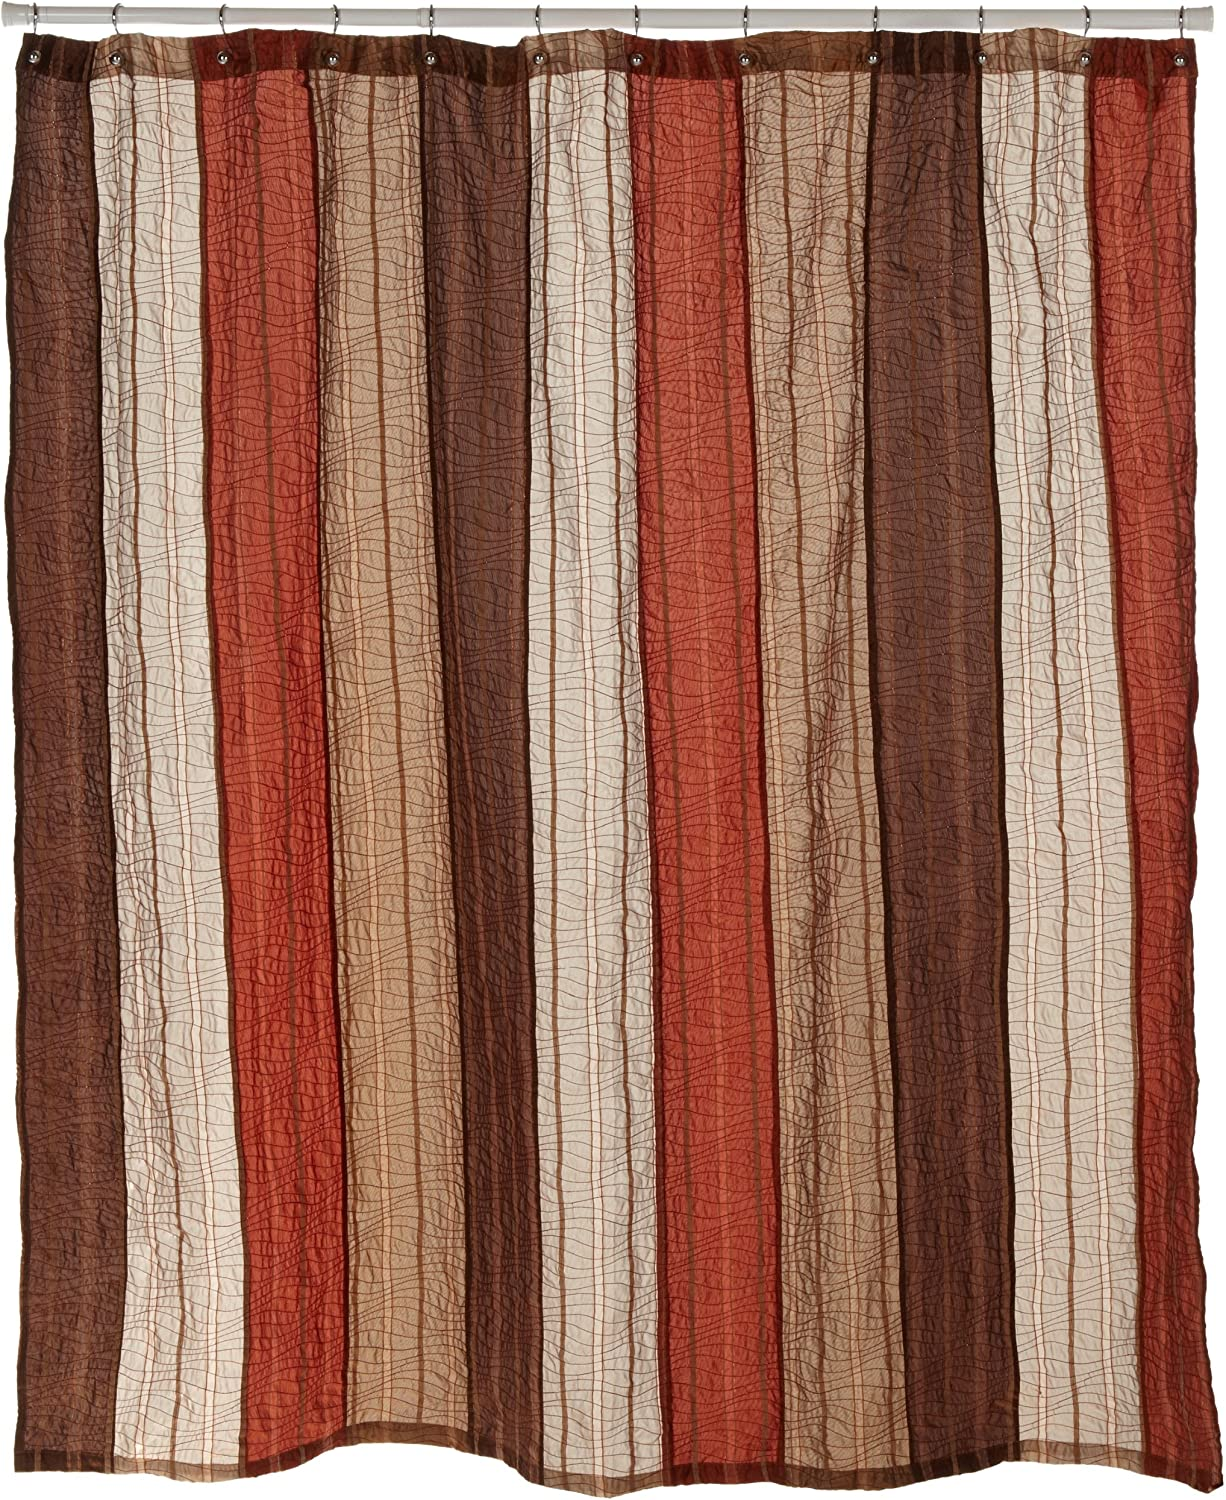 Manor Hill, Sierra Collection, Shower Curtain, Copper